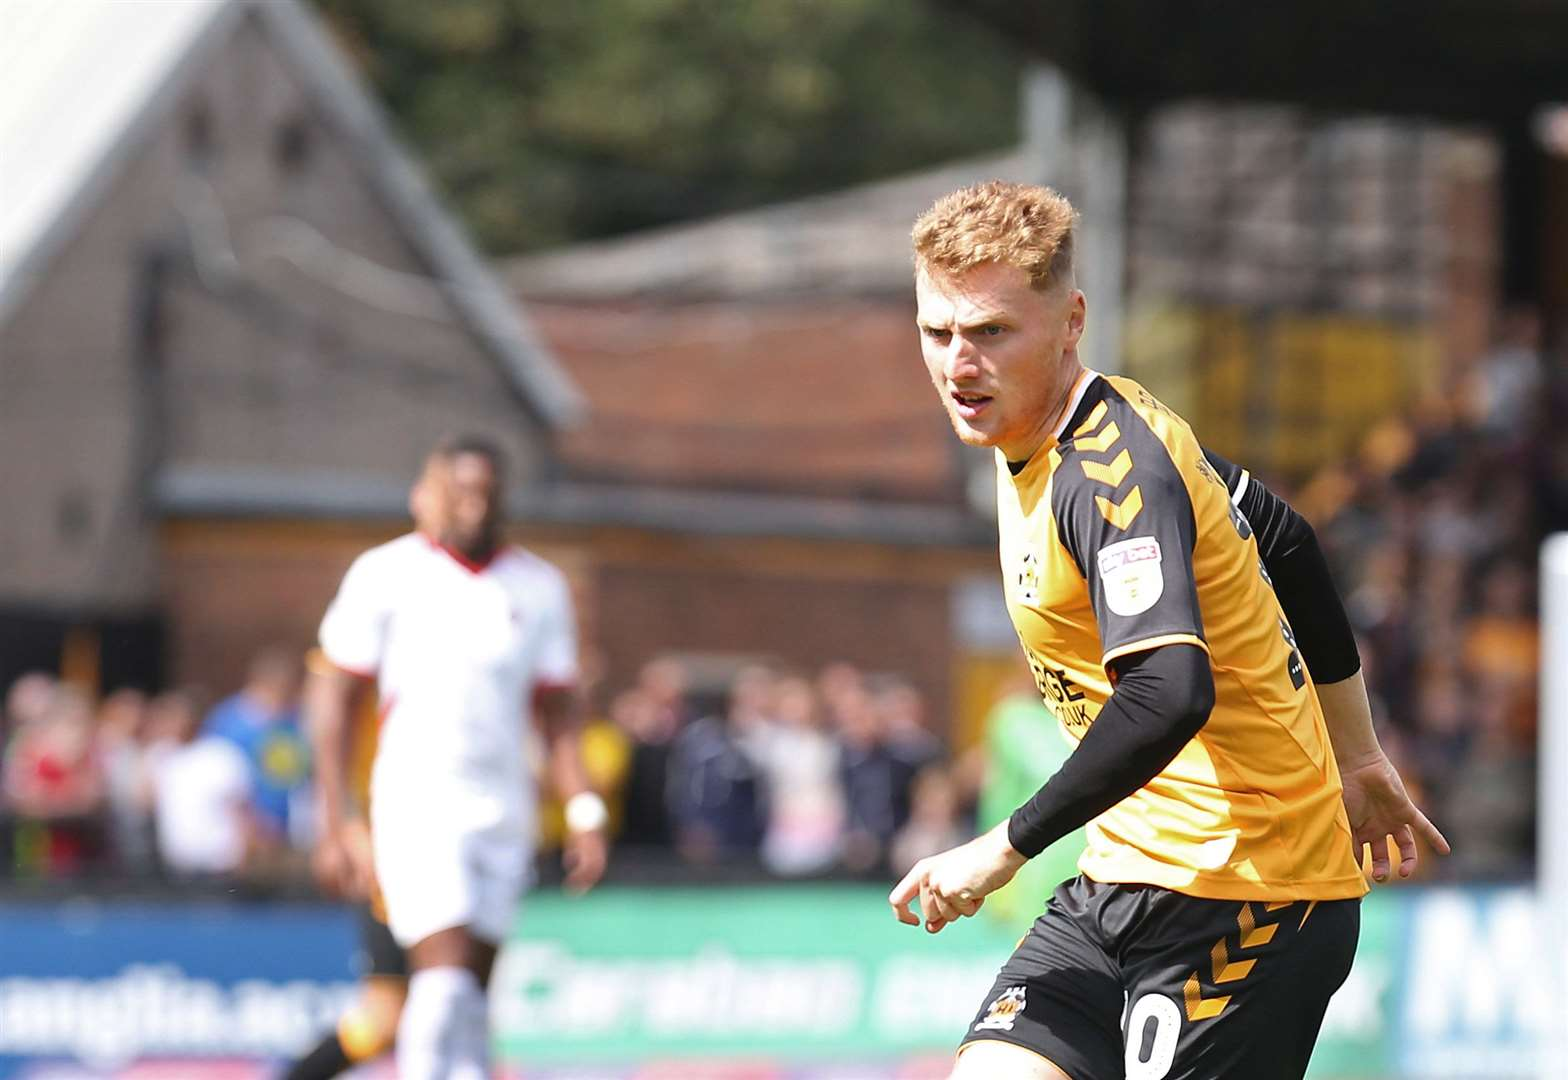 Away-day blues for Cambridge United at Salford City in Sky Bet League Two